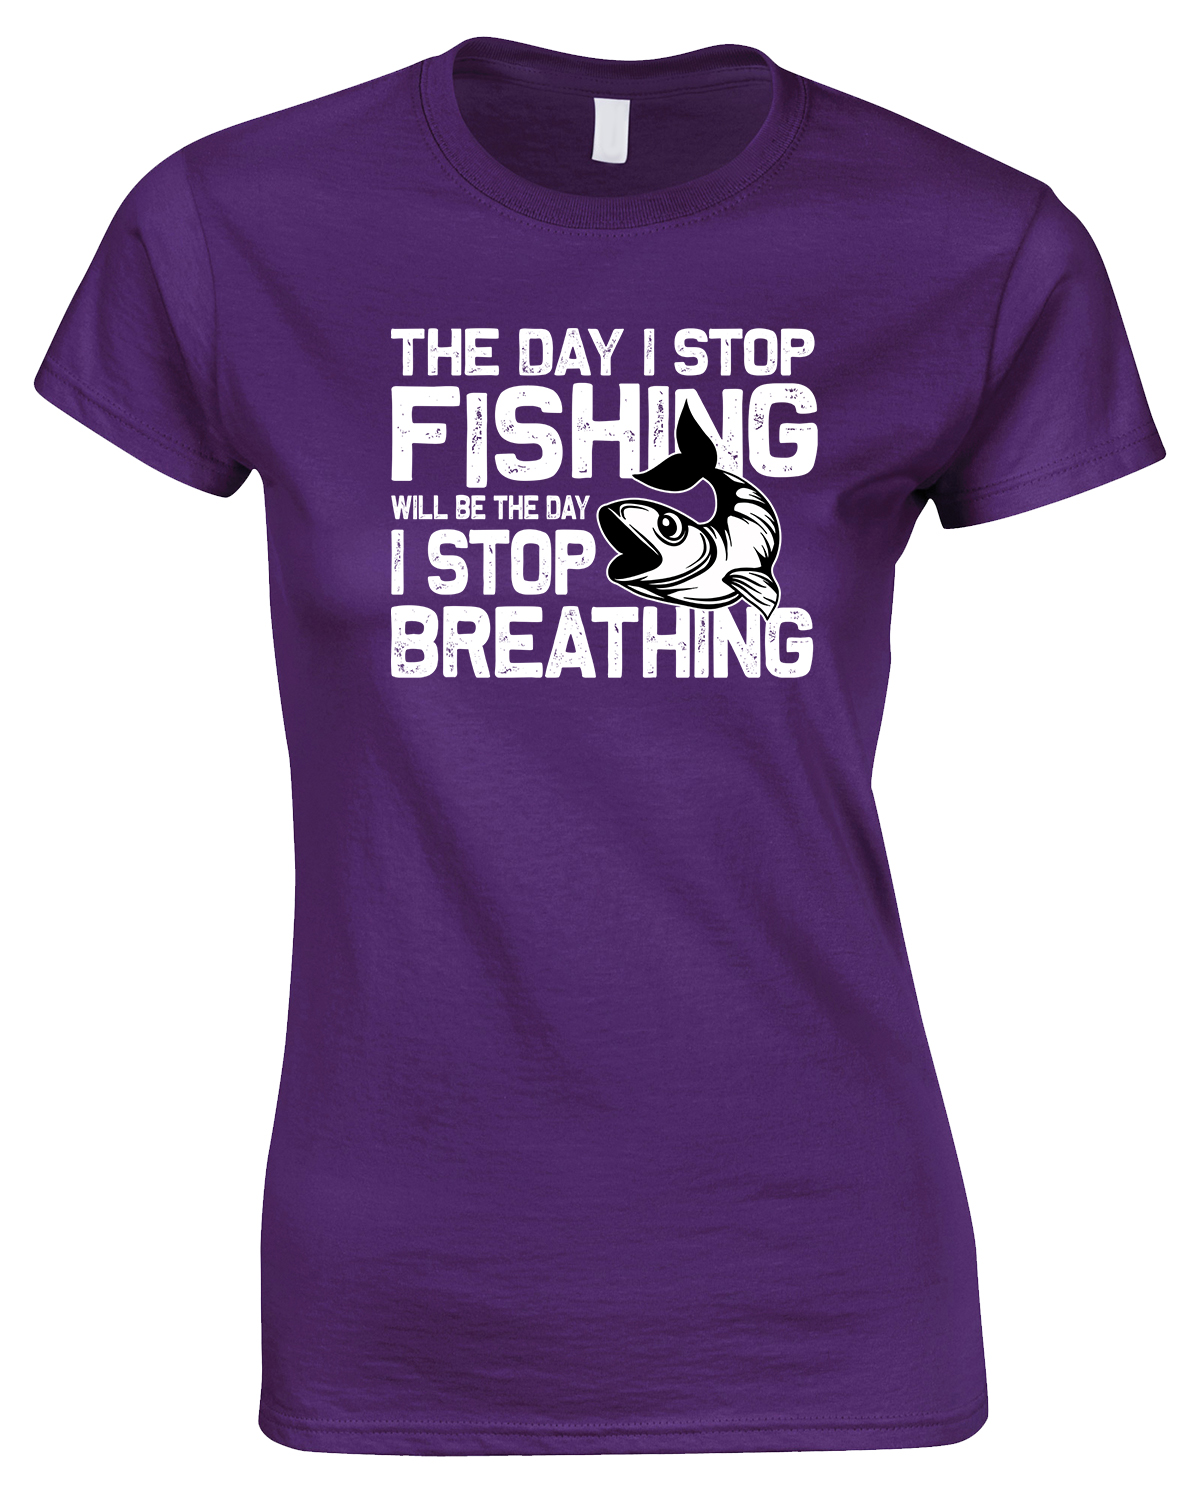 The Day I Stop Fishing Will Be The Day I Stop Breathing - Ladies Style T Shirt